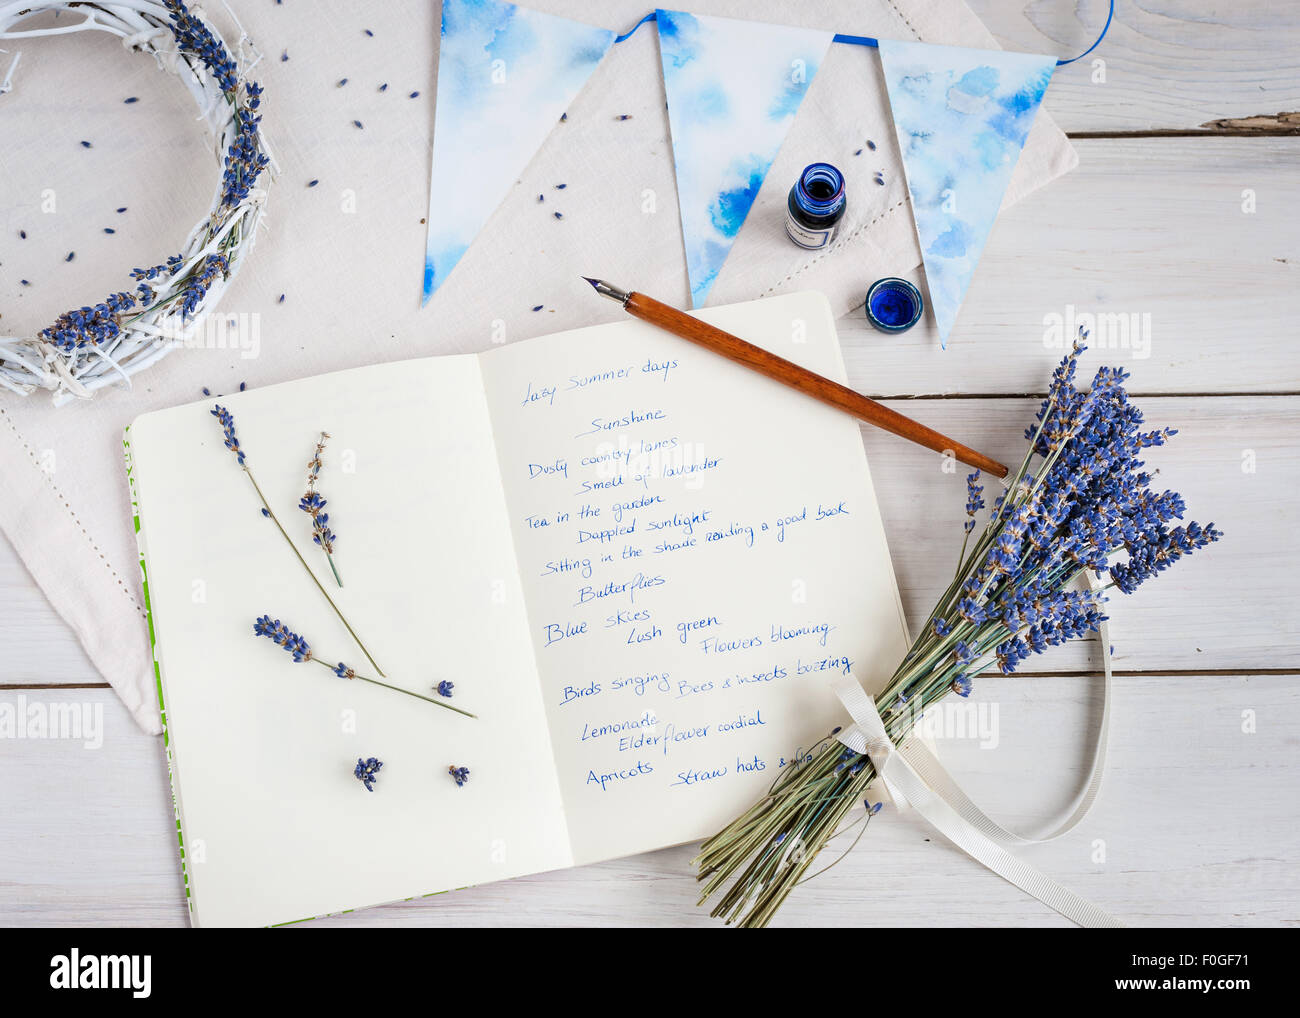 lavender, journal, pen and ink, and words of summer - Stock Image